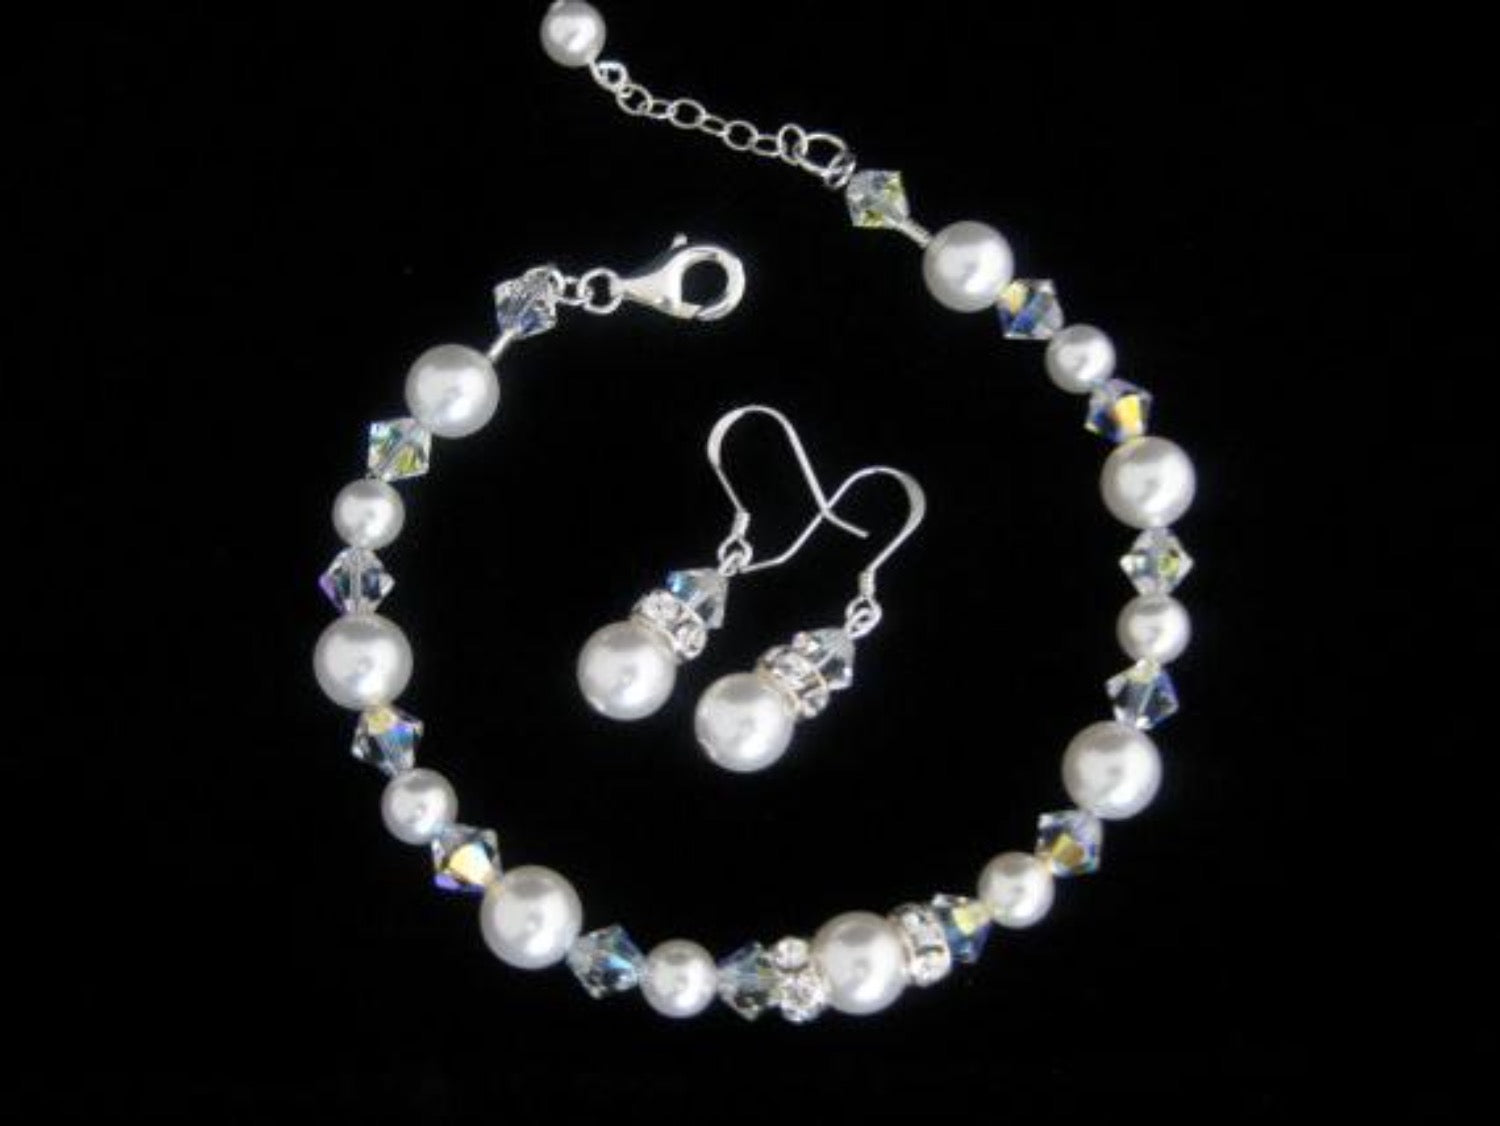 Wedding pearl bracelet and earrings for brides - Clairesbridal - 3